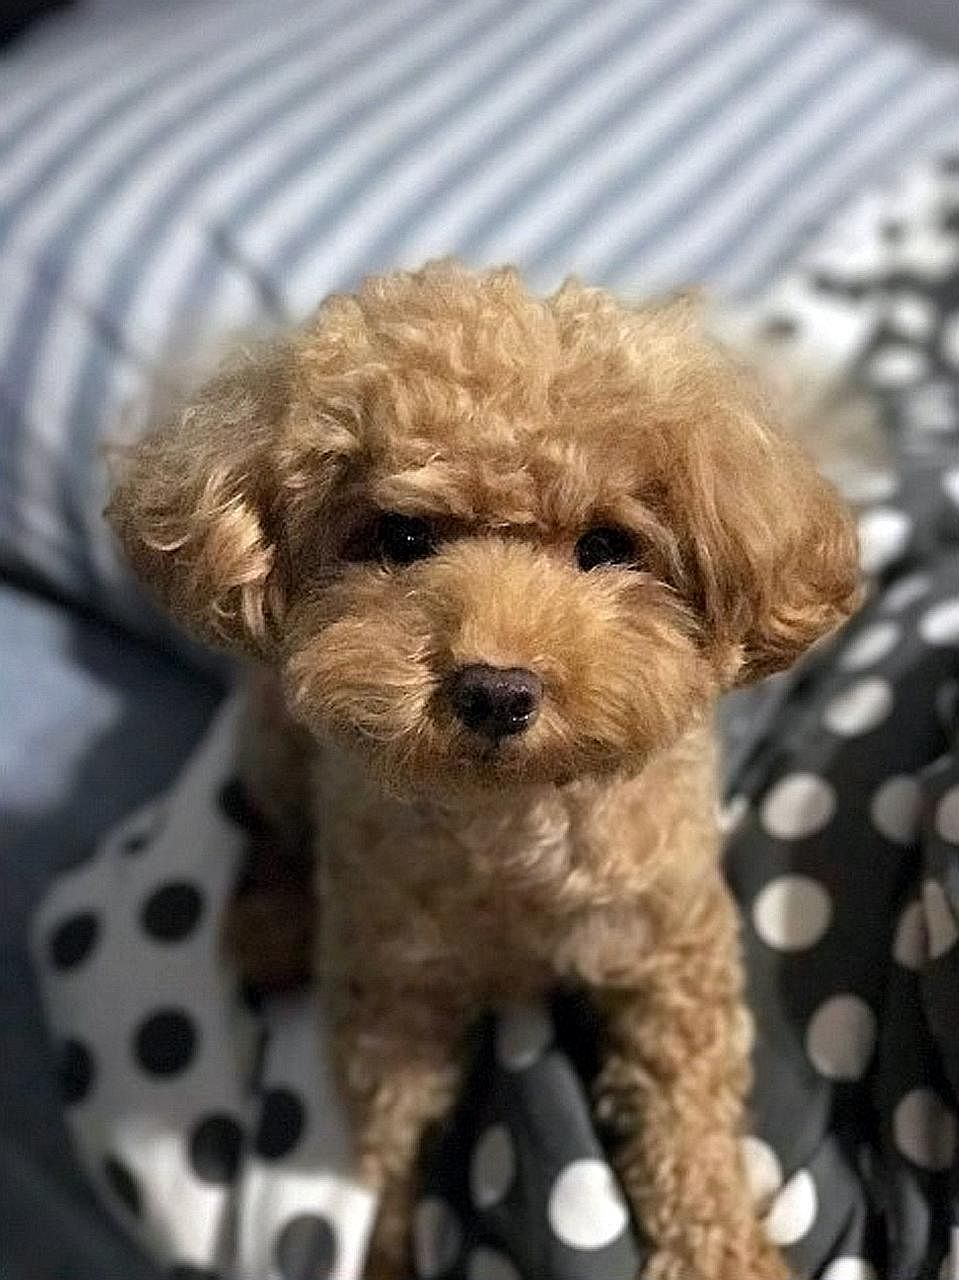 Gerald Kok Zhin Oi allegedly ill-treated the toy poodle between July and December last year. He is accused of hitting it with a cushion and clothes hanger. He also allegedly flung the dog on a bed twice, and it hit the wall the second time.